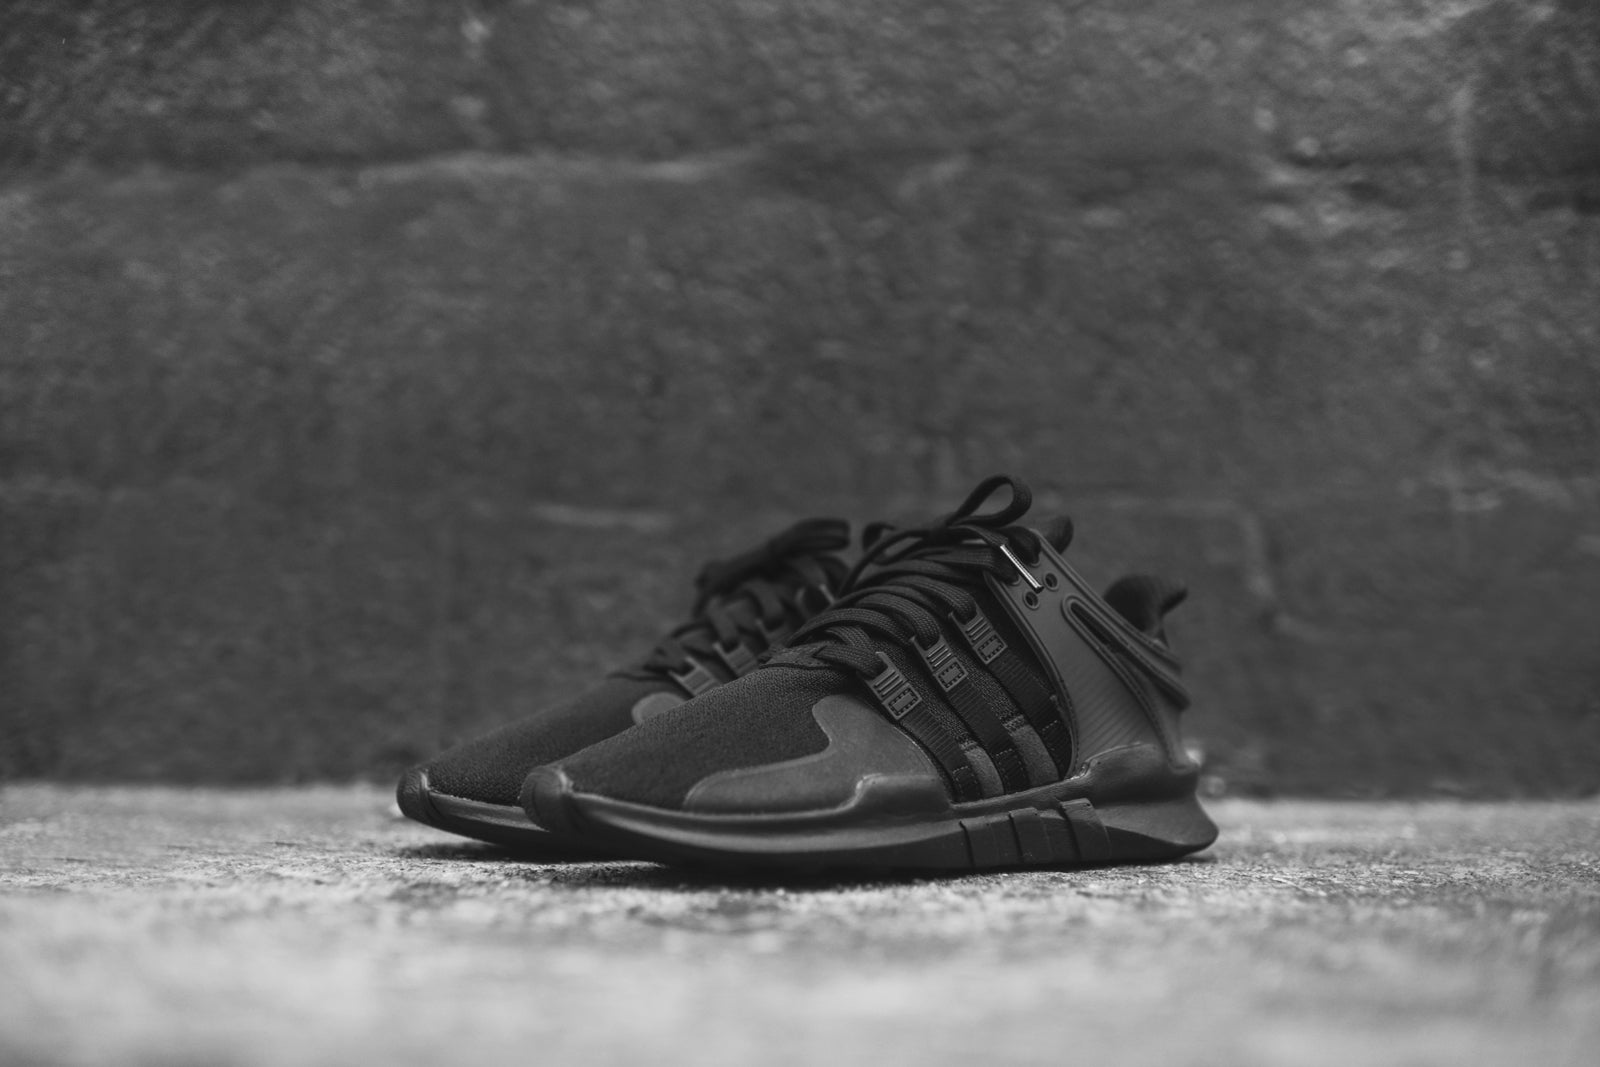 e34863ba5d07 ... Sports shoes adidas Originals EQT Support ADV - Triple Black  sneaker adidas  EQT Basketball ...